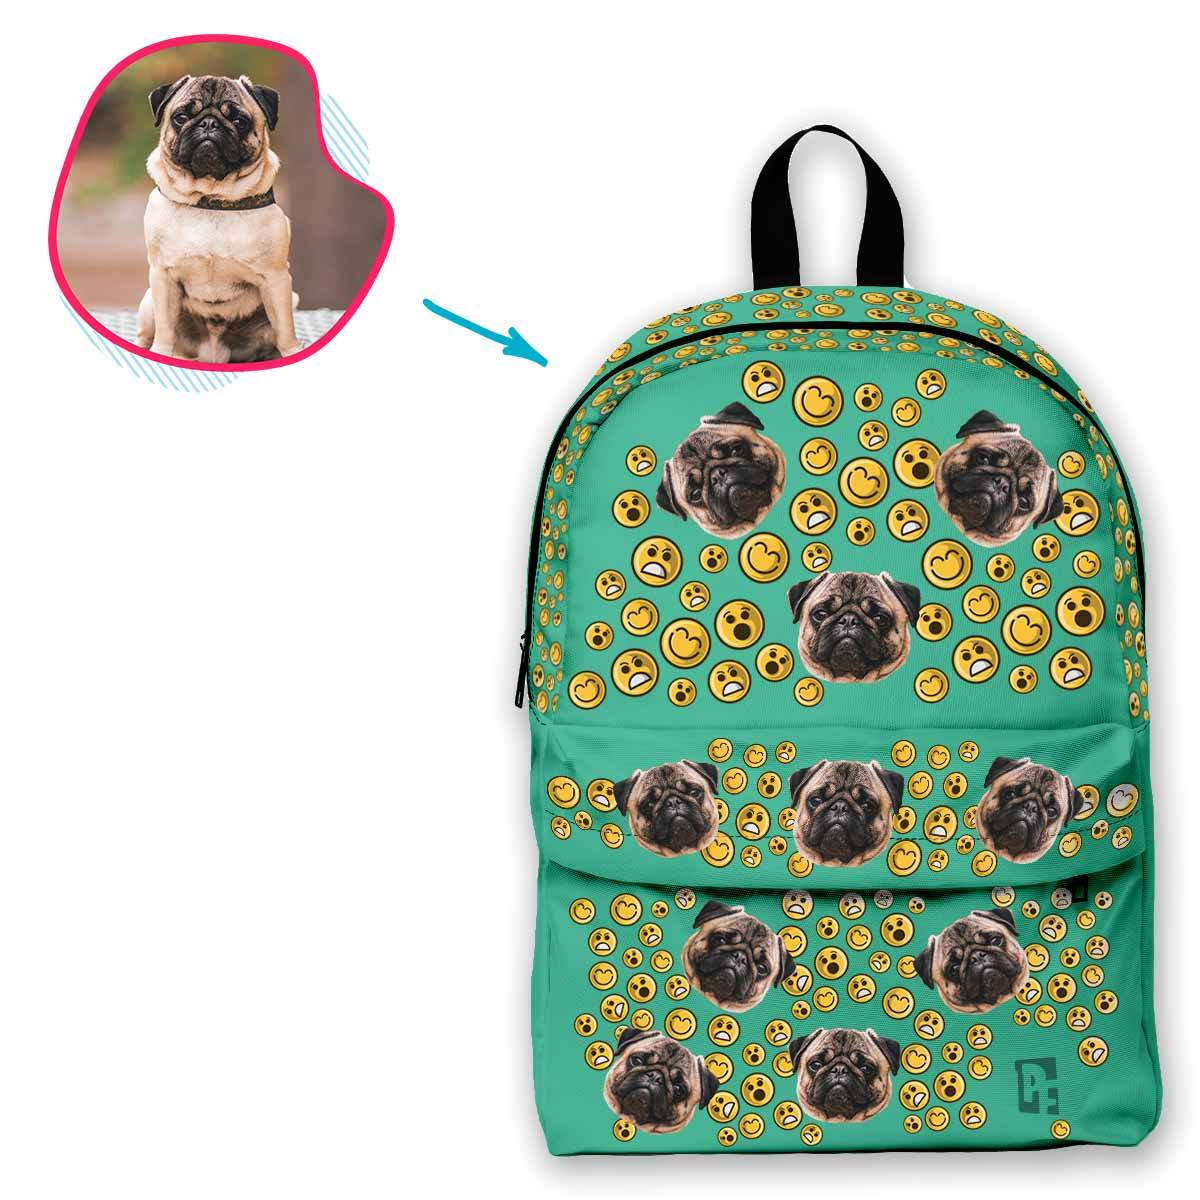 mint Smiles classic backpack personalized with photo of face printed on it